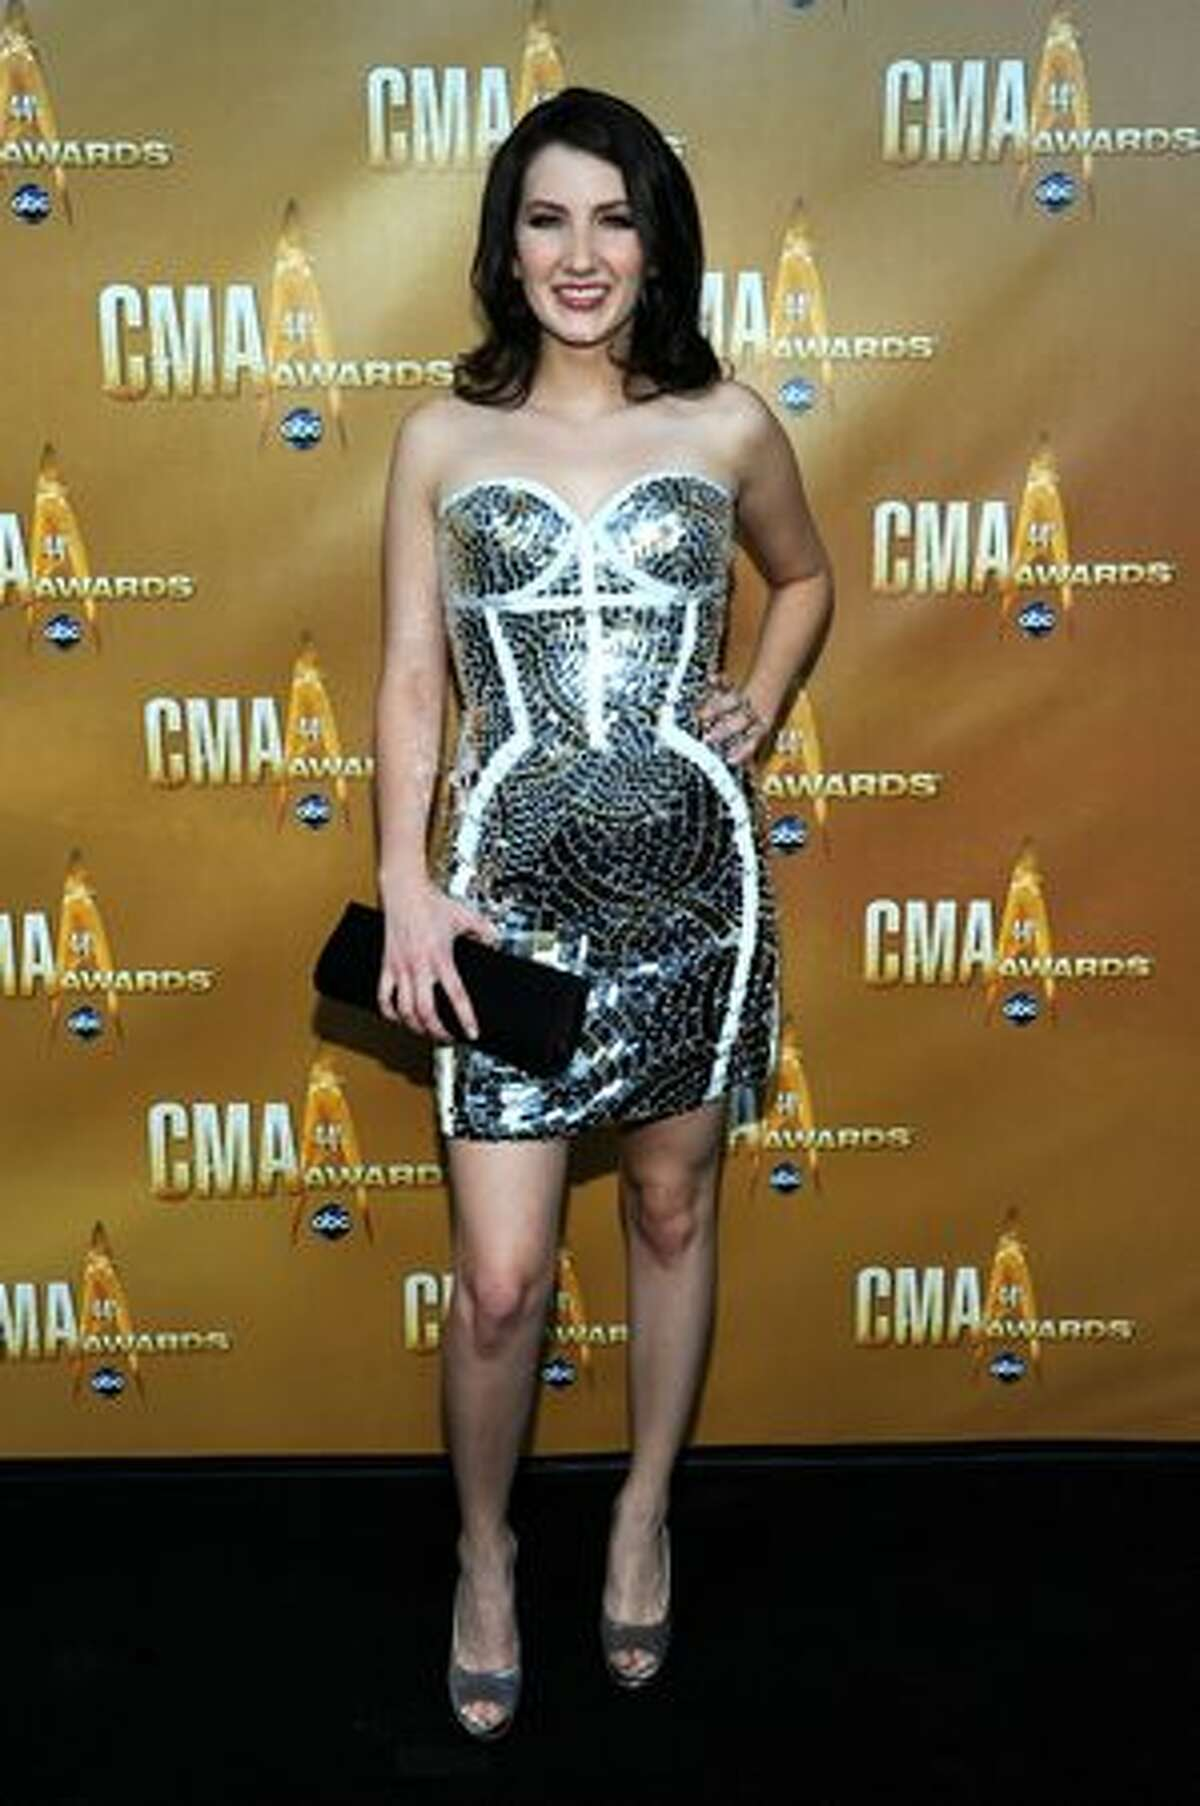 Singer Katie Armiger attends the 44th Annual CMA Awards at the Bridgestone Arena on November 10, 2010 in Nashville, Tennessee.